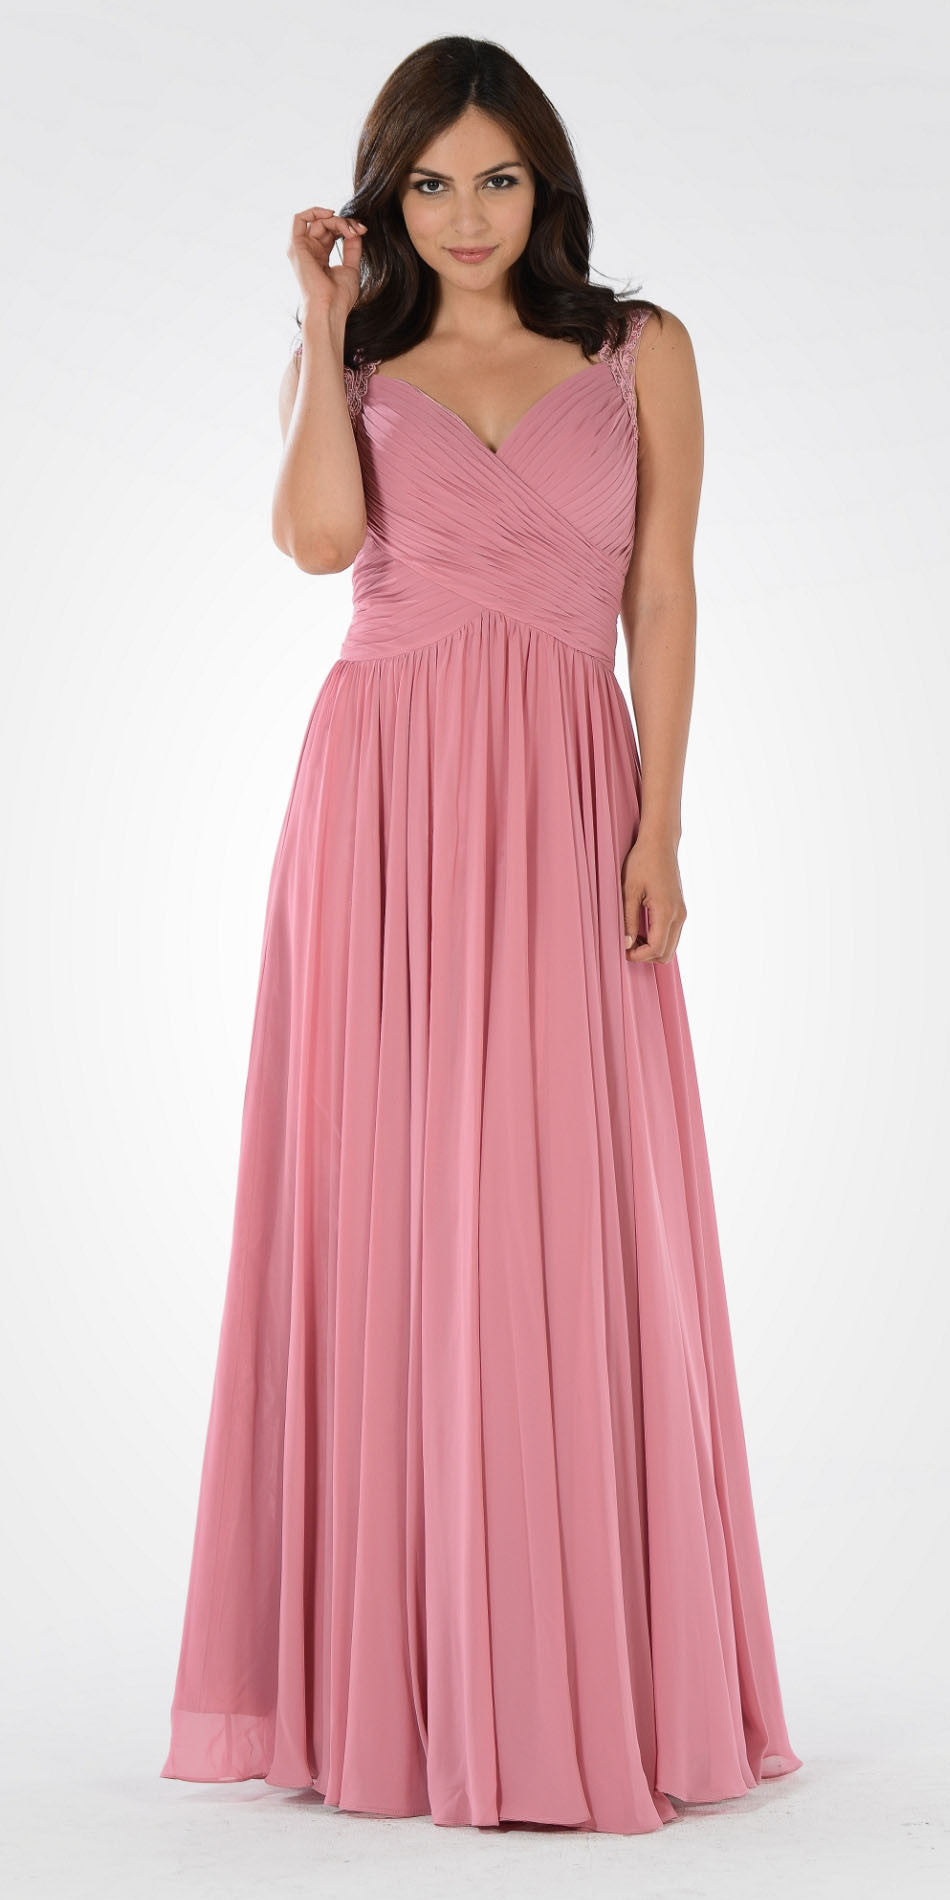 Dusty Rose Plunging Neck Embroidered Back A-Line Prom Dress Long